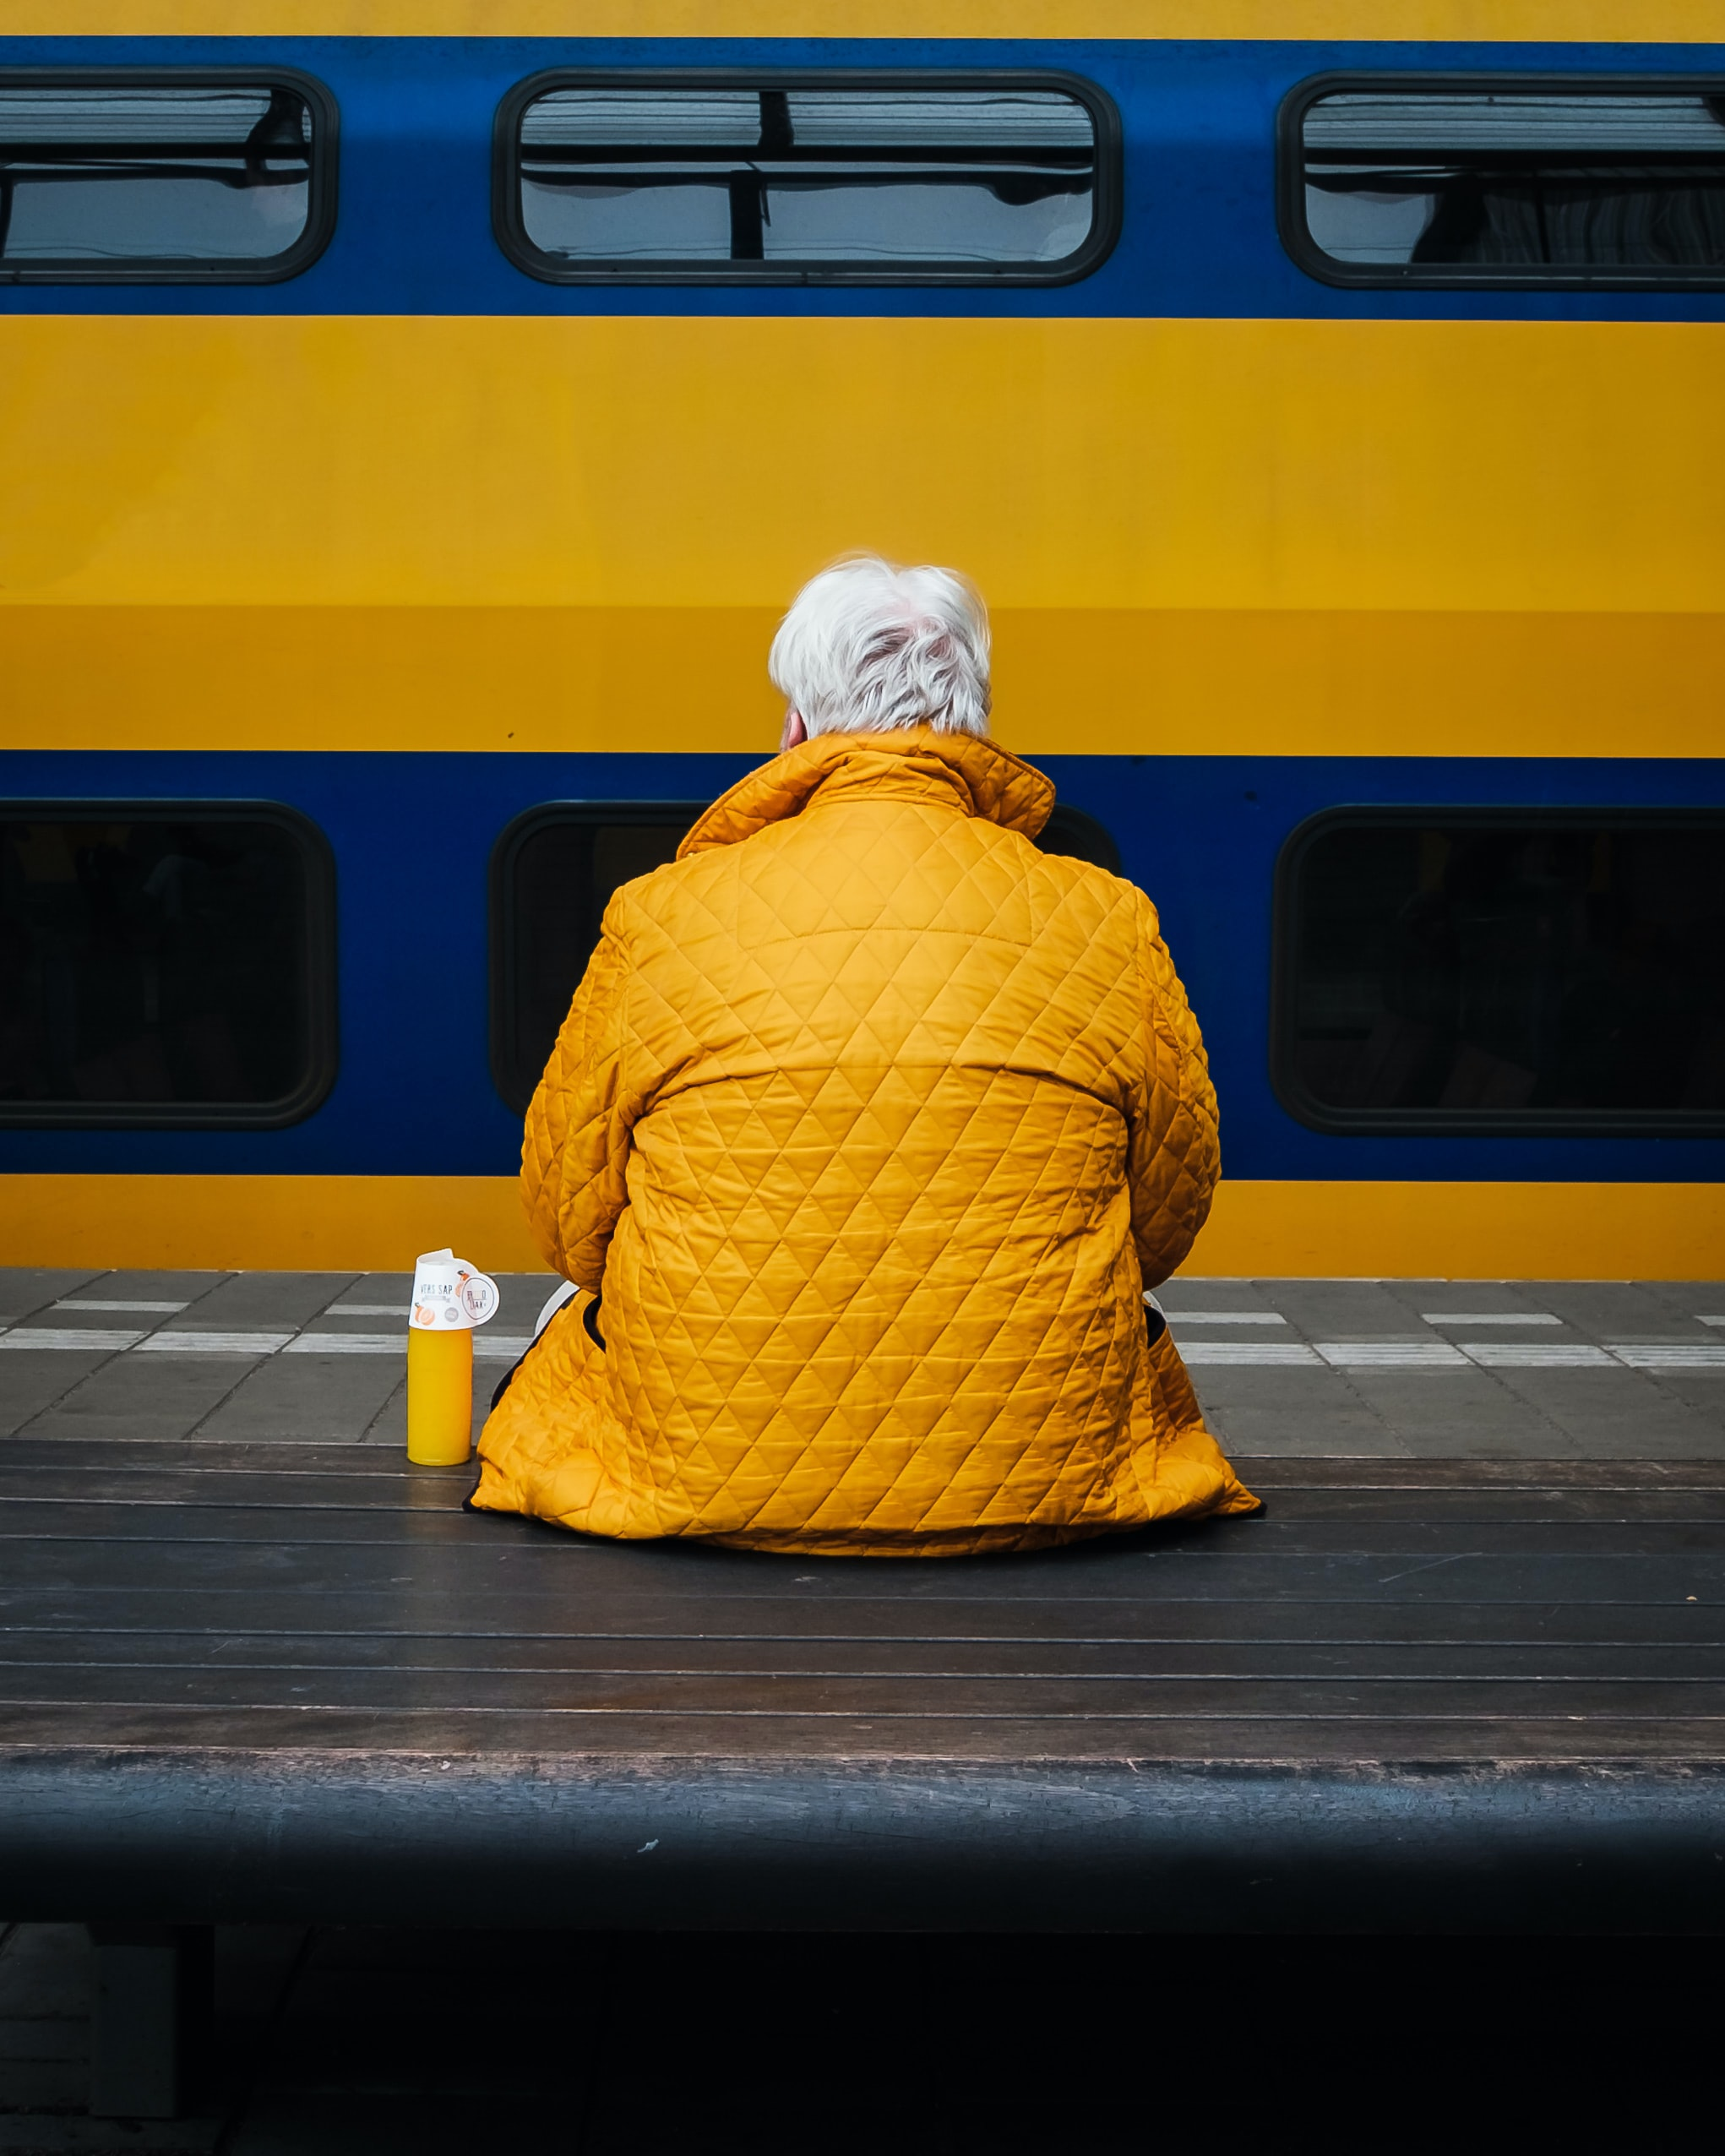 person wearing jacket and sitting on bench